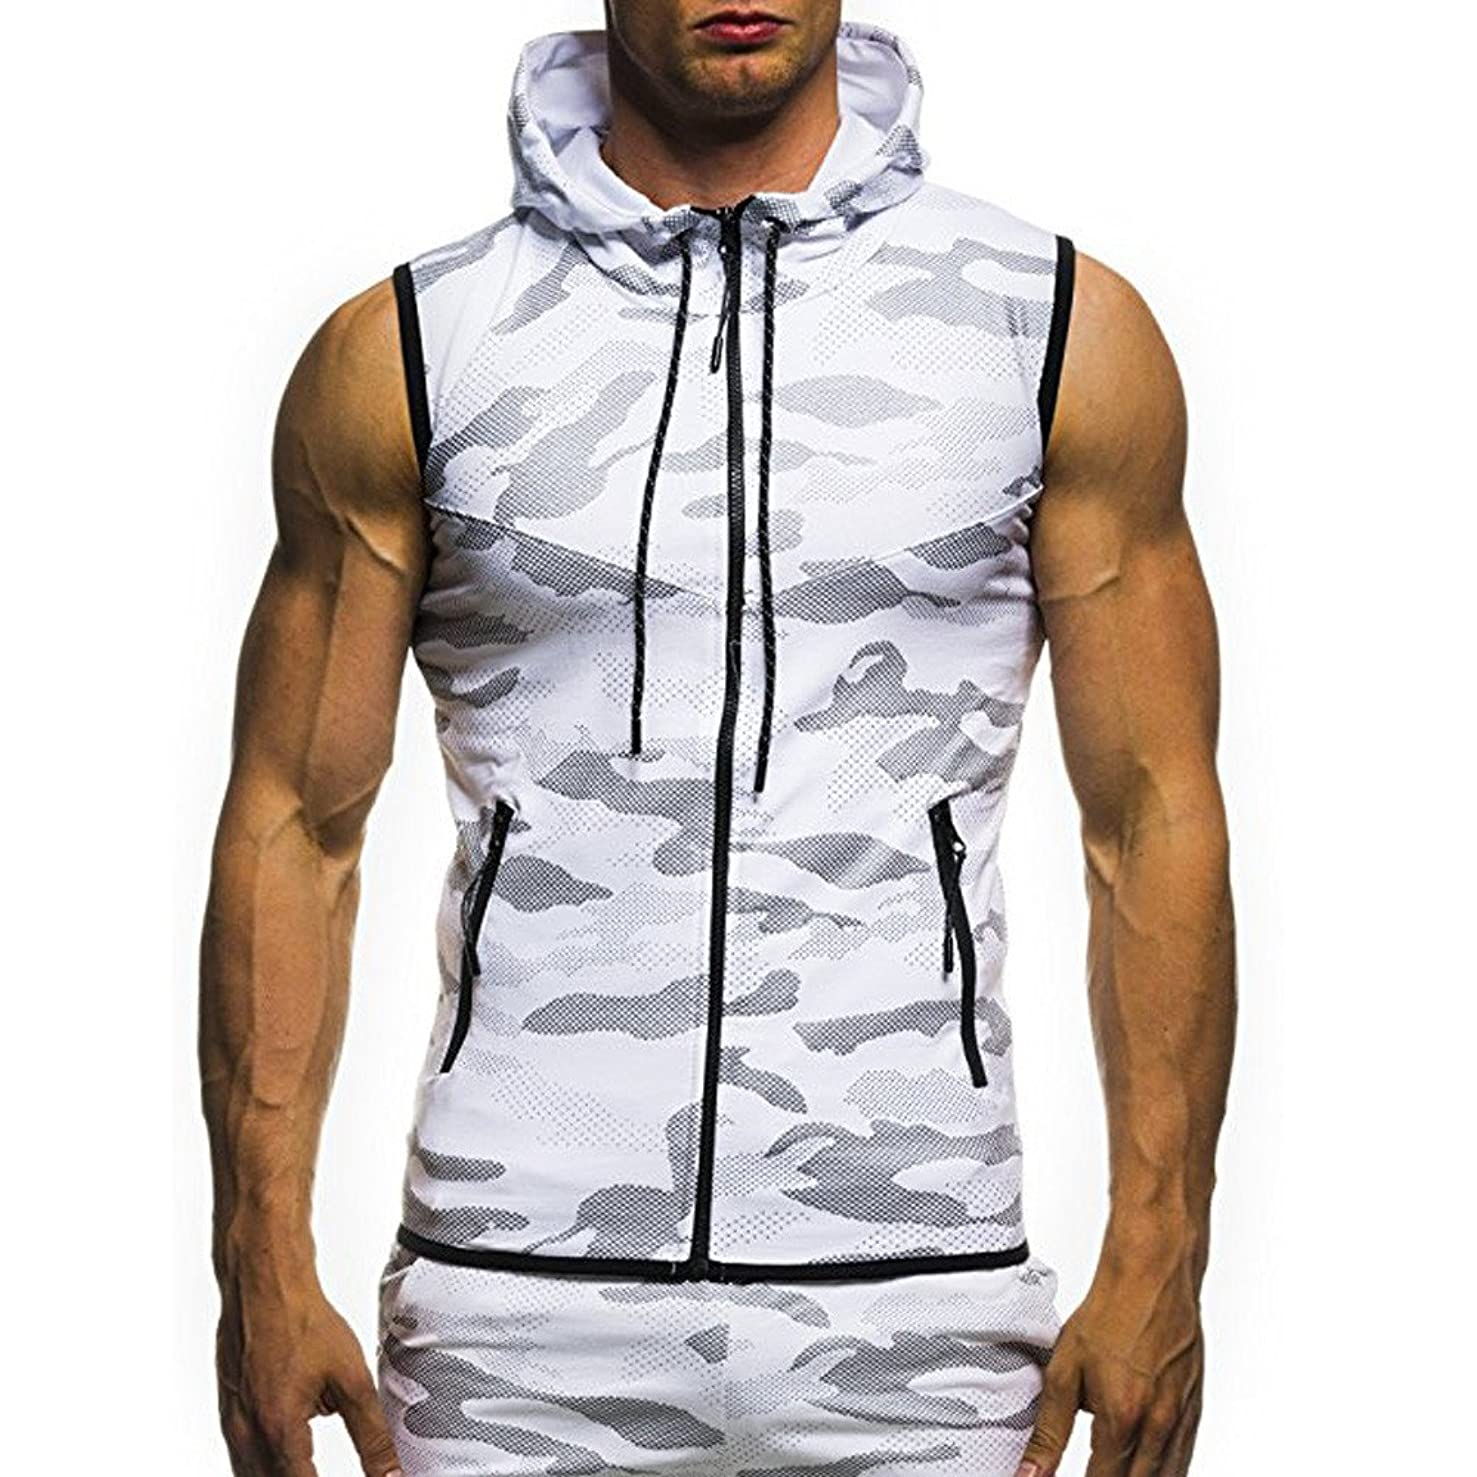 miqiqism Hoodie Mens Hipster Tank Tops Camouflage Sleeveless Athletic Shirt Summer Muscle Stringer Vest Gym Workout T-Shirt